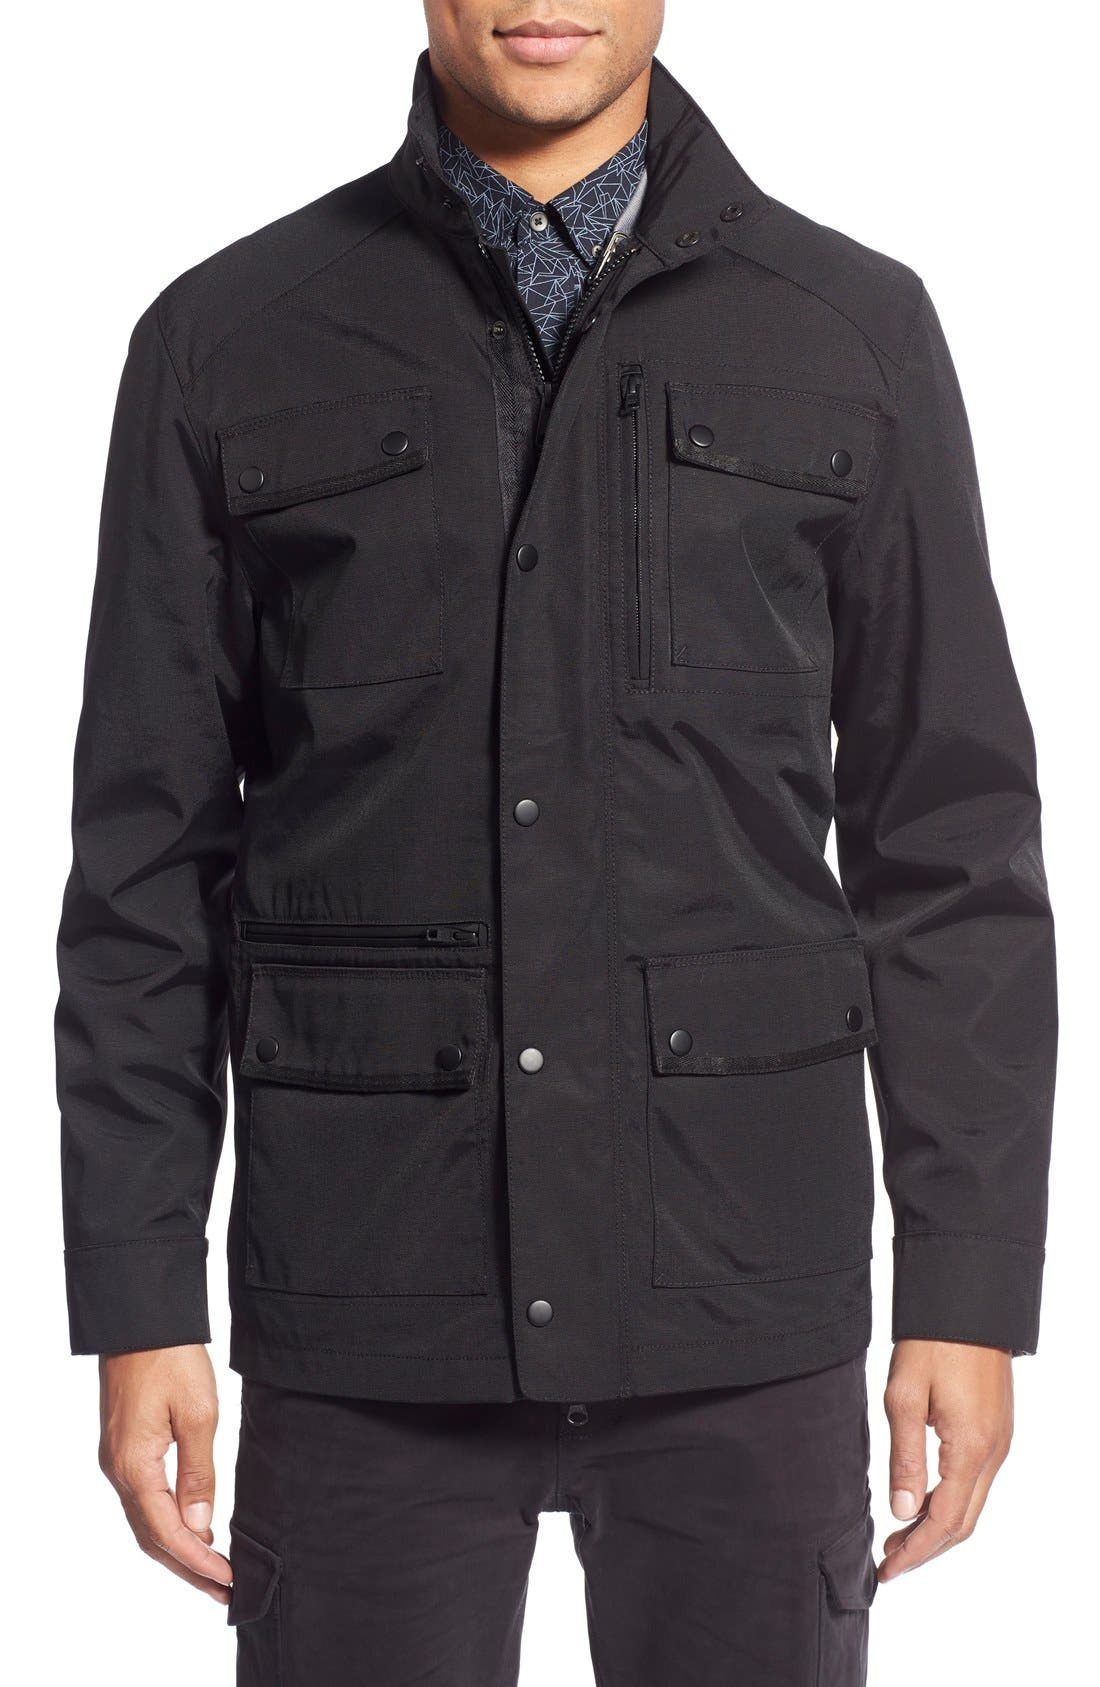 'Ethan' 3-in-1 Field Jacket,                             Main thumbnail 1, color,                             Black